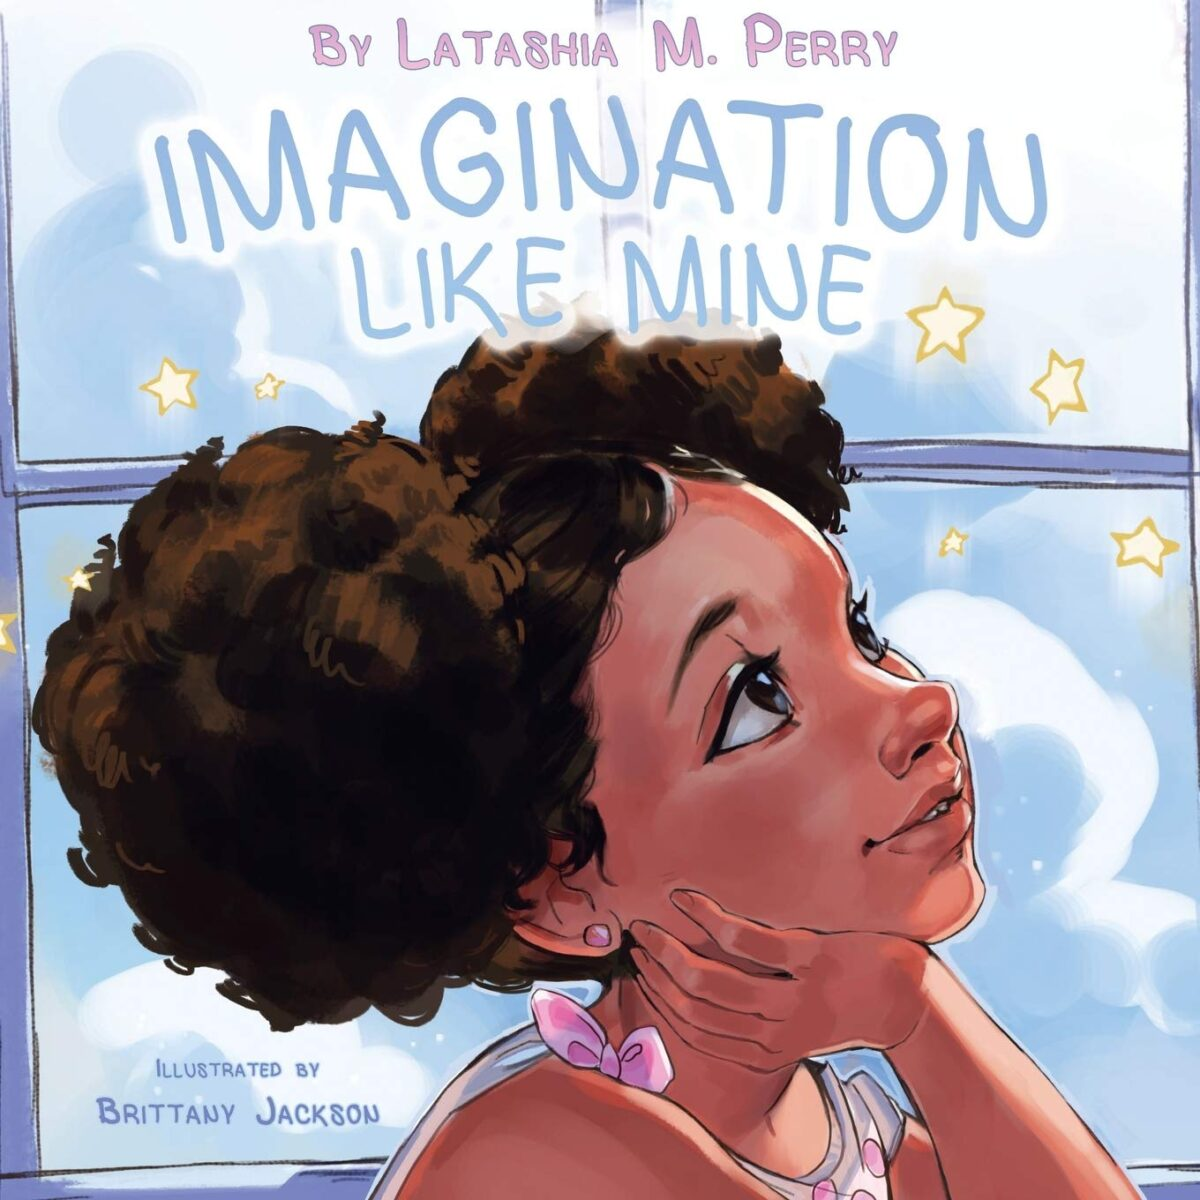 Book cover for Imagination Like Mine by Latashia M. Perry